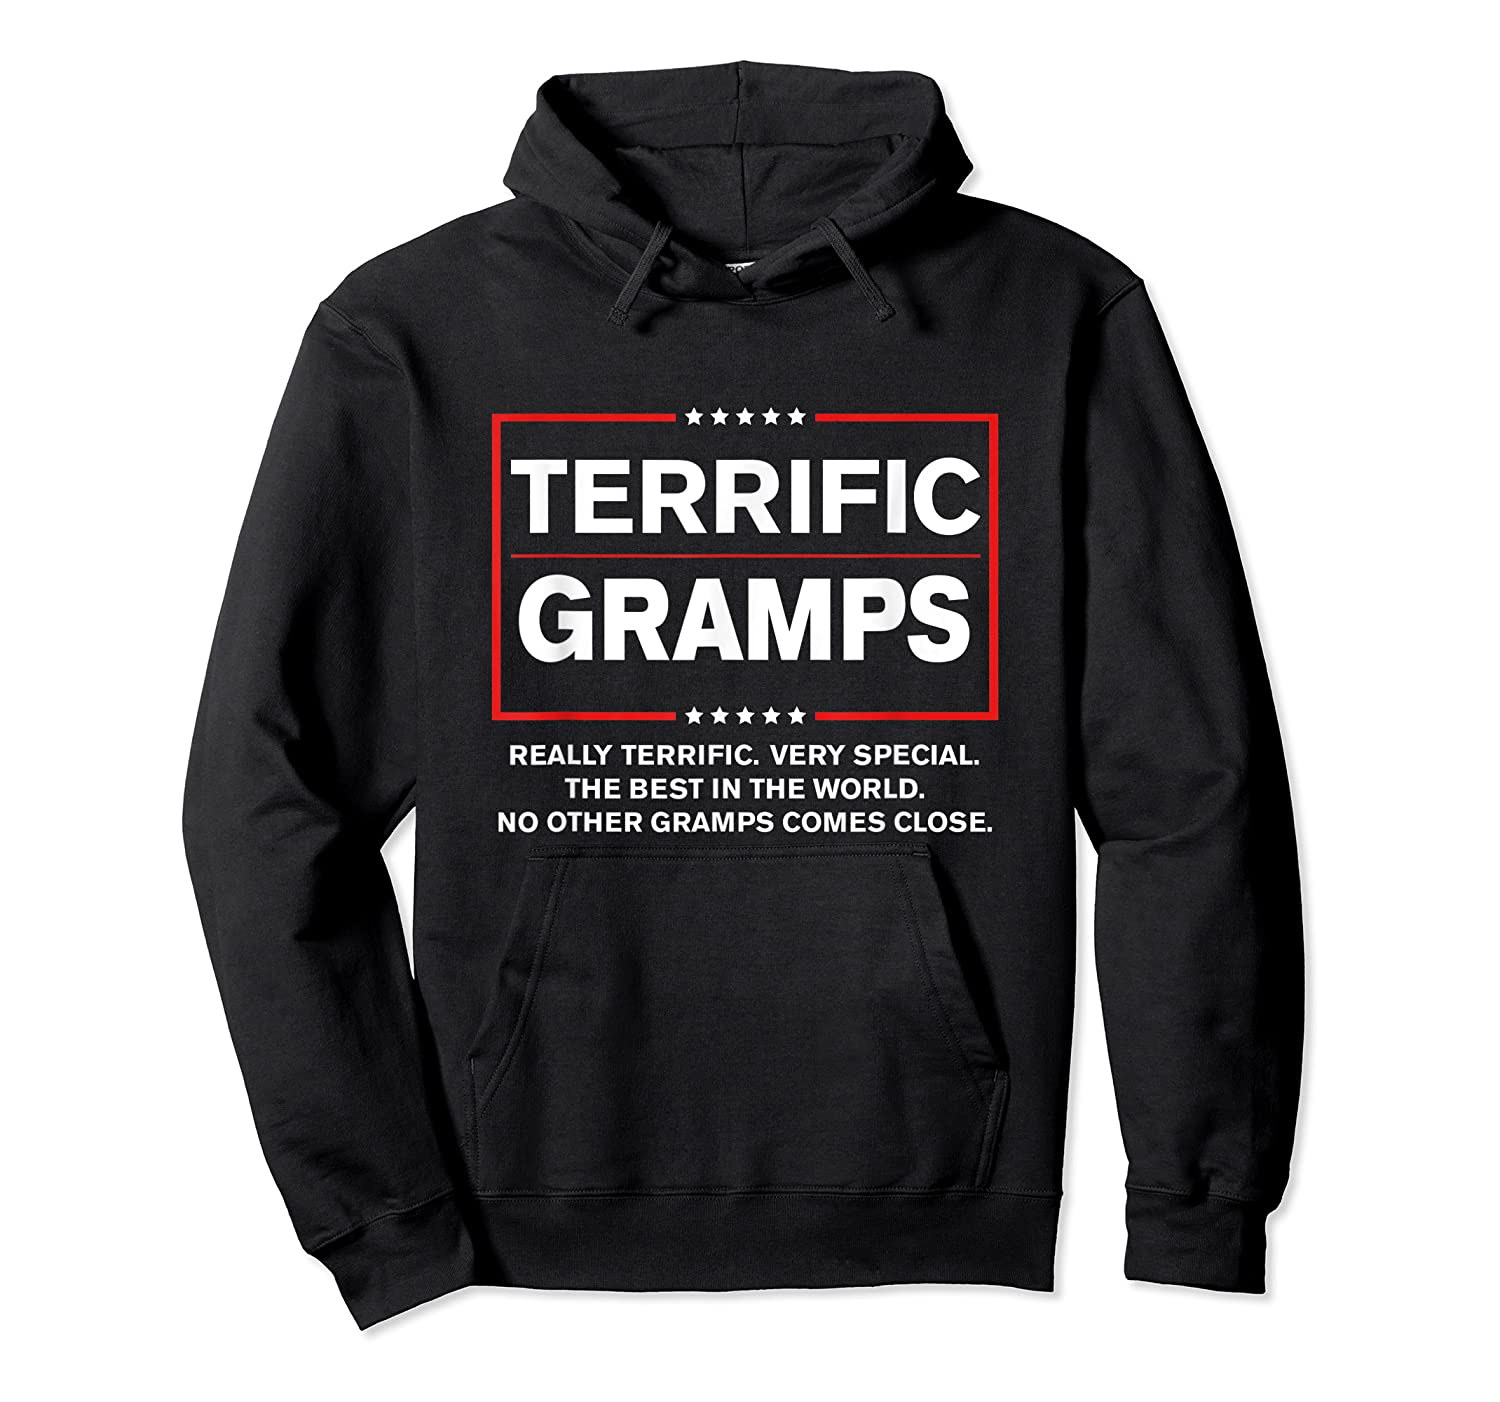 Donald Trump Fathers Day Gift For Gramps Funny Campaign Sign T Shirt Unisex Pullover Hoodie